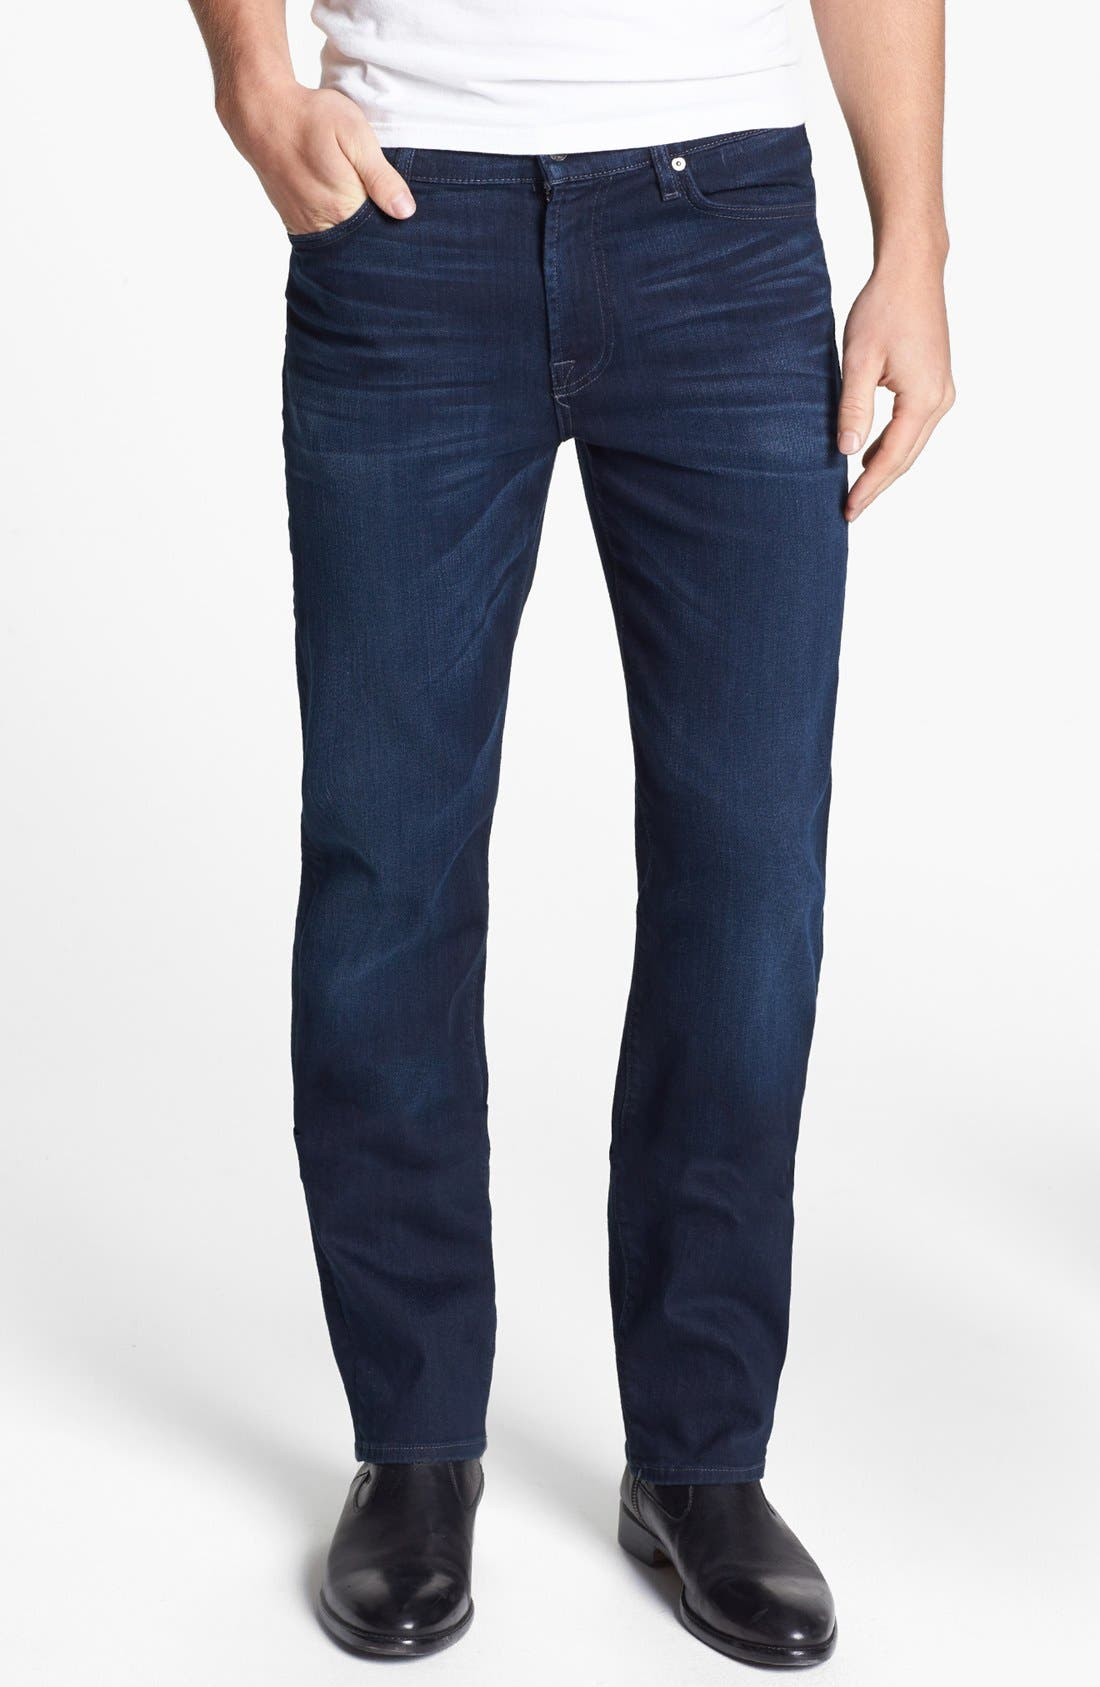 'Slimmy - Luxe Performance' Slim Fit Jeans,                             Main thumbnail 1, color,                             402